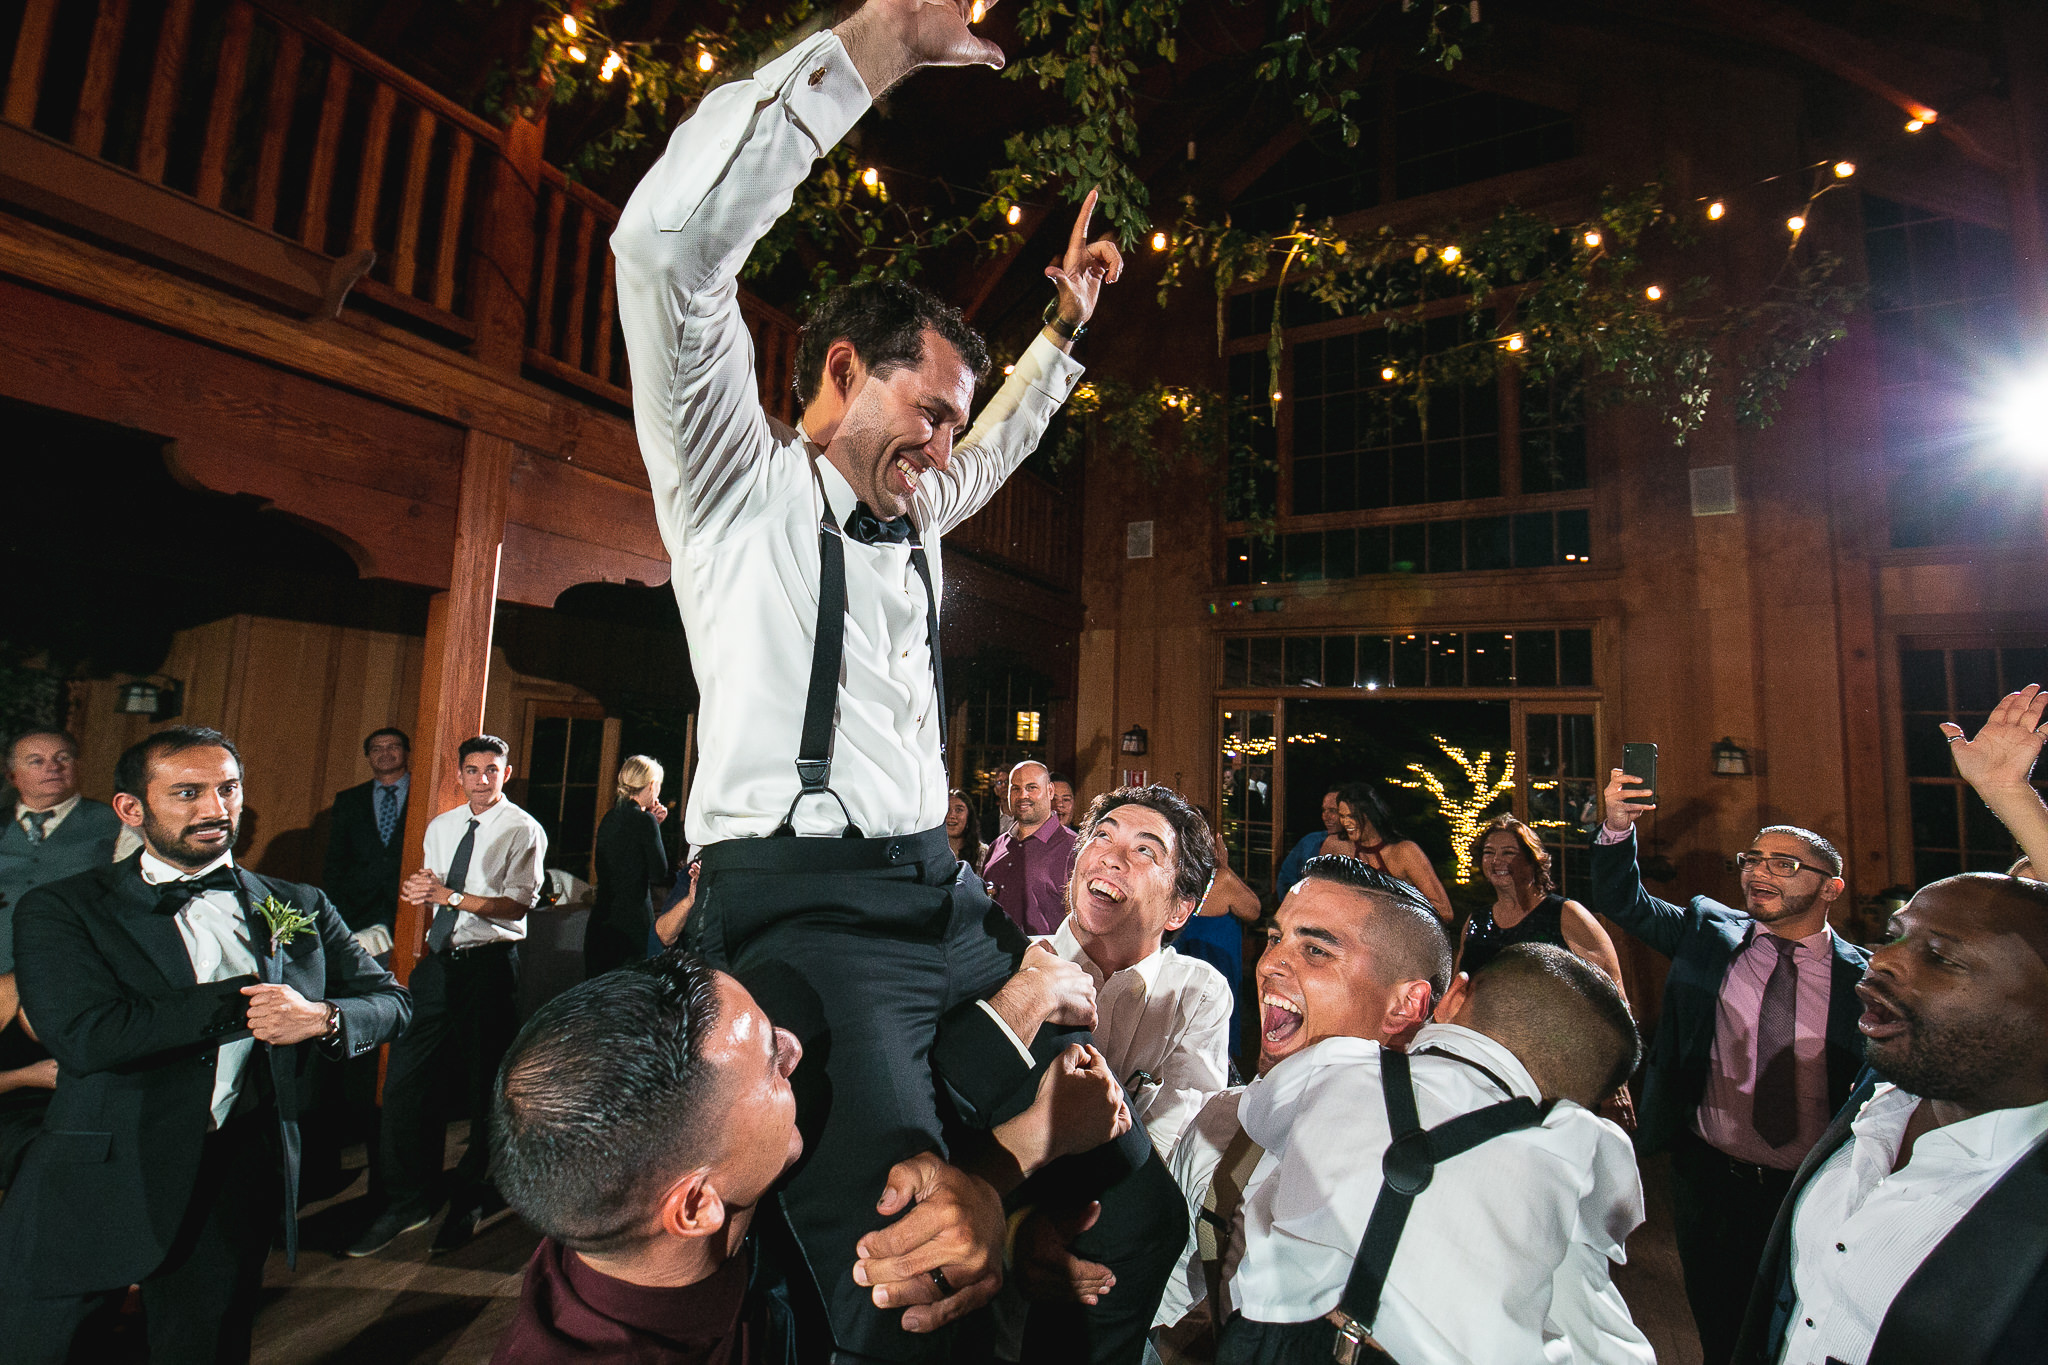 This usually happens to the groom towards the end of the night just before last call :D